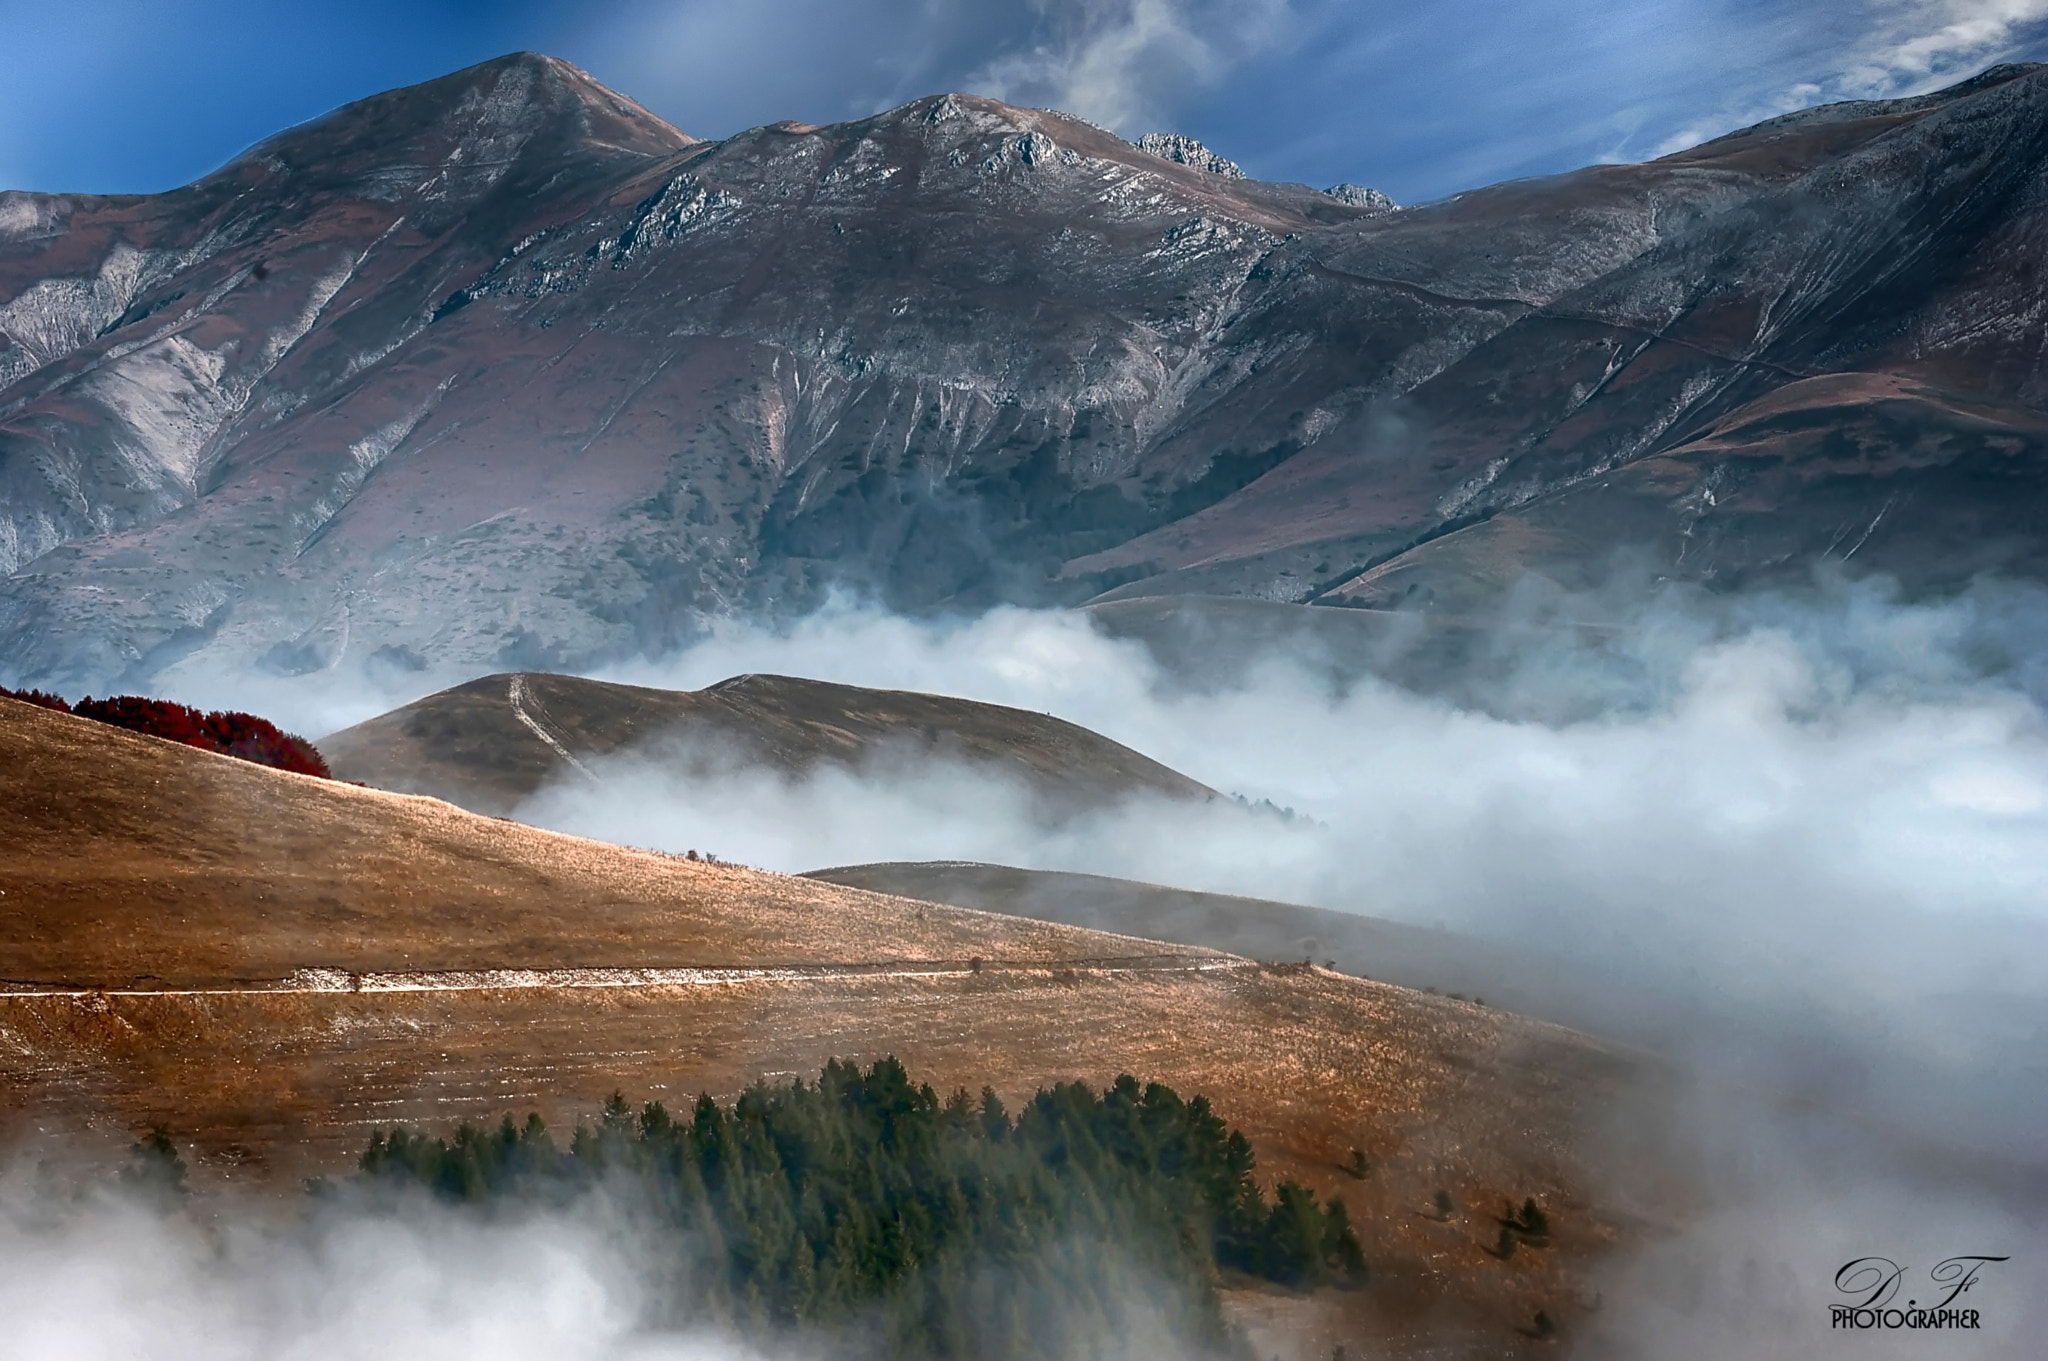 Photograph I monti Sibillini by Daniele Forestiere on 500px